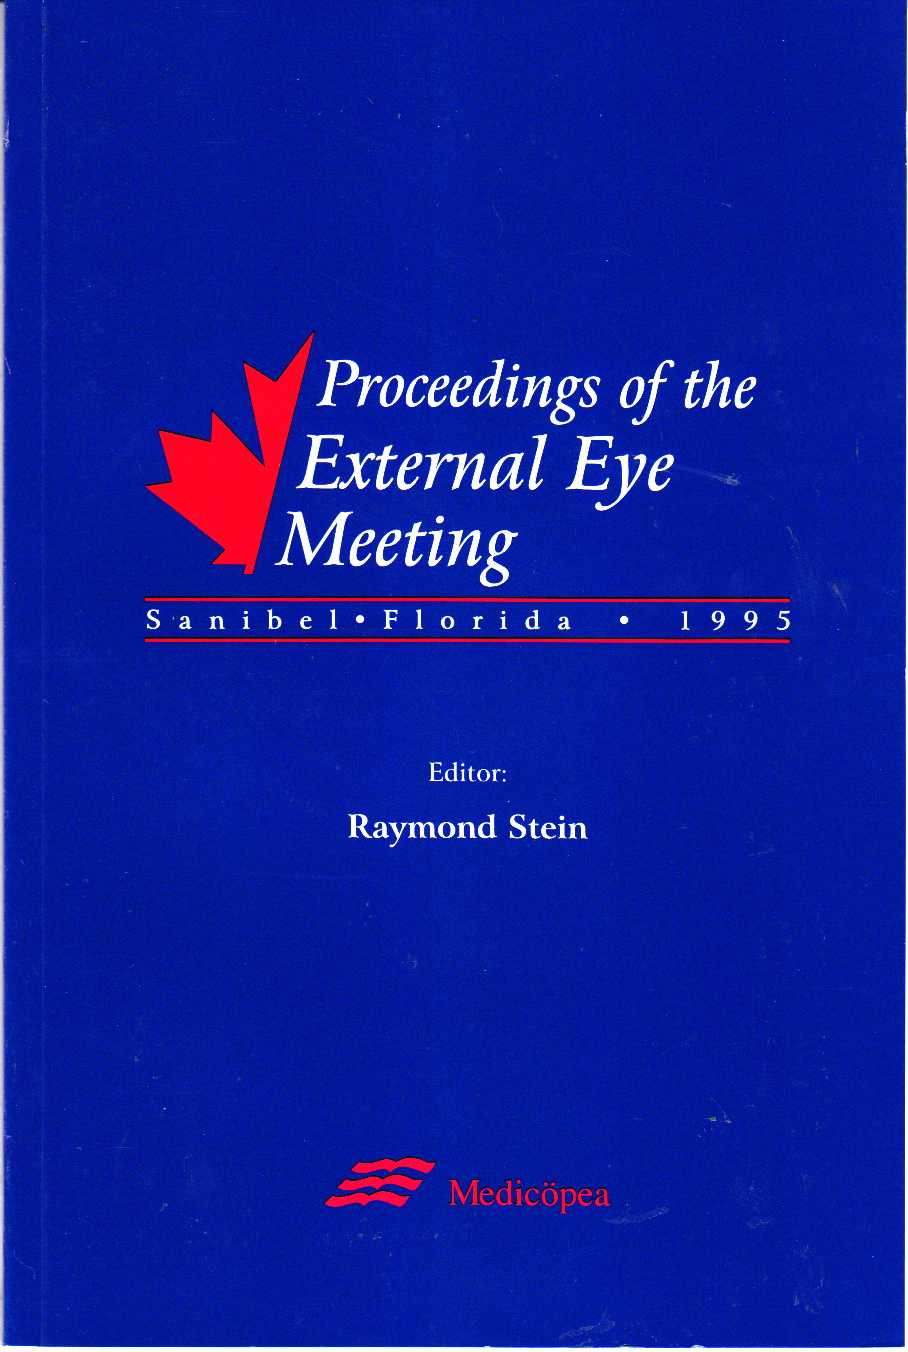 Image for Proceedings of the External Eye Meeting, Sanibel Florida 1995